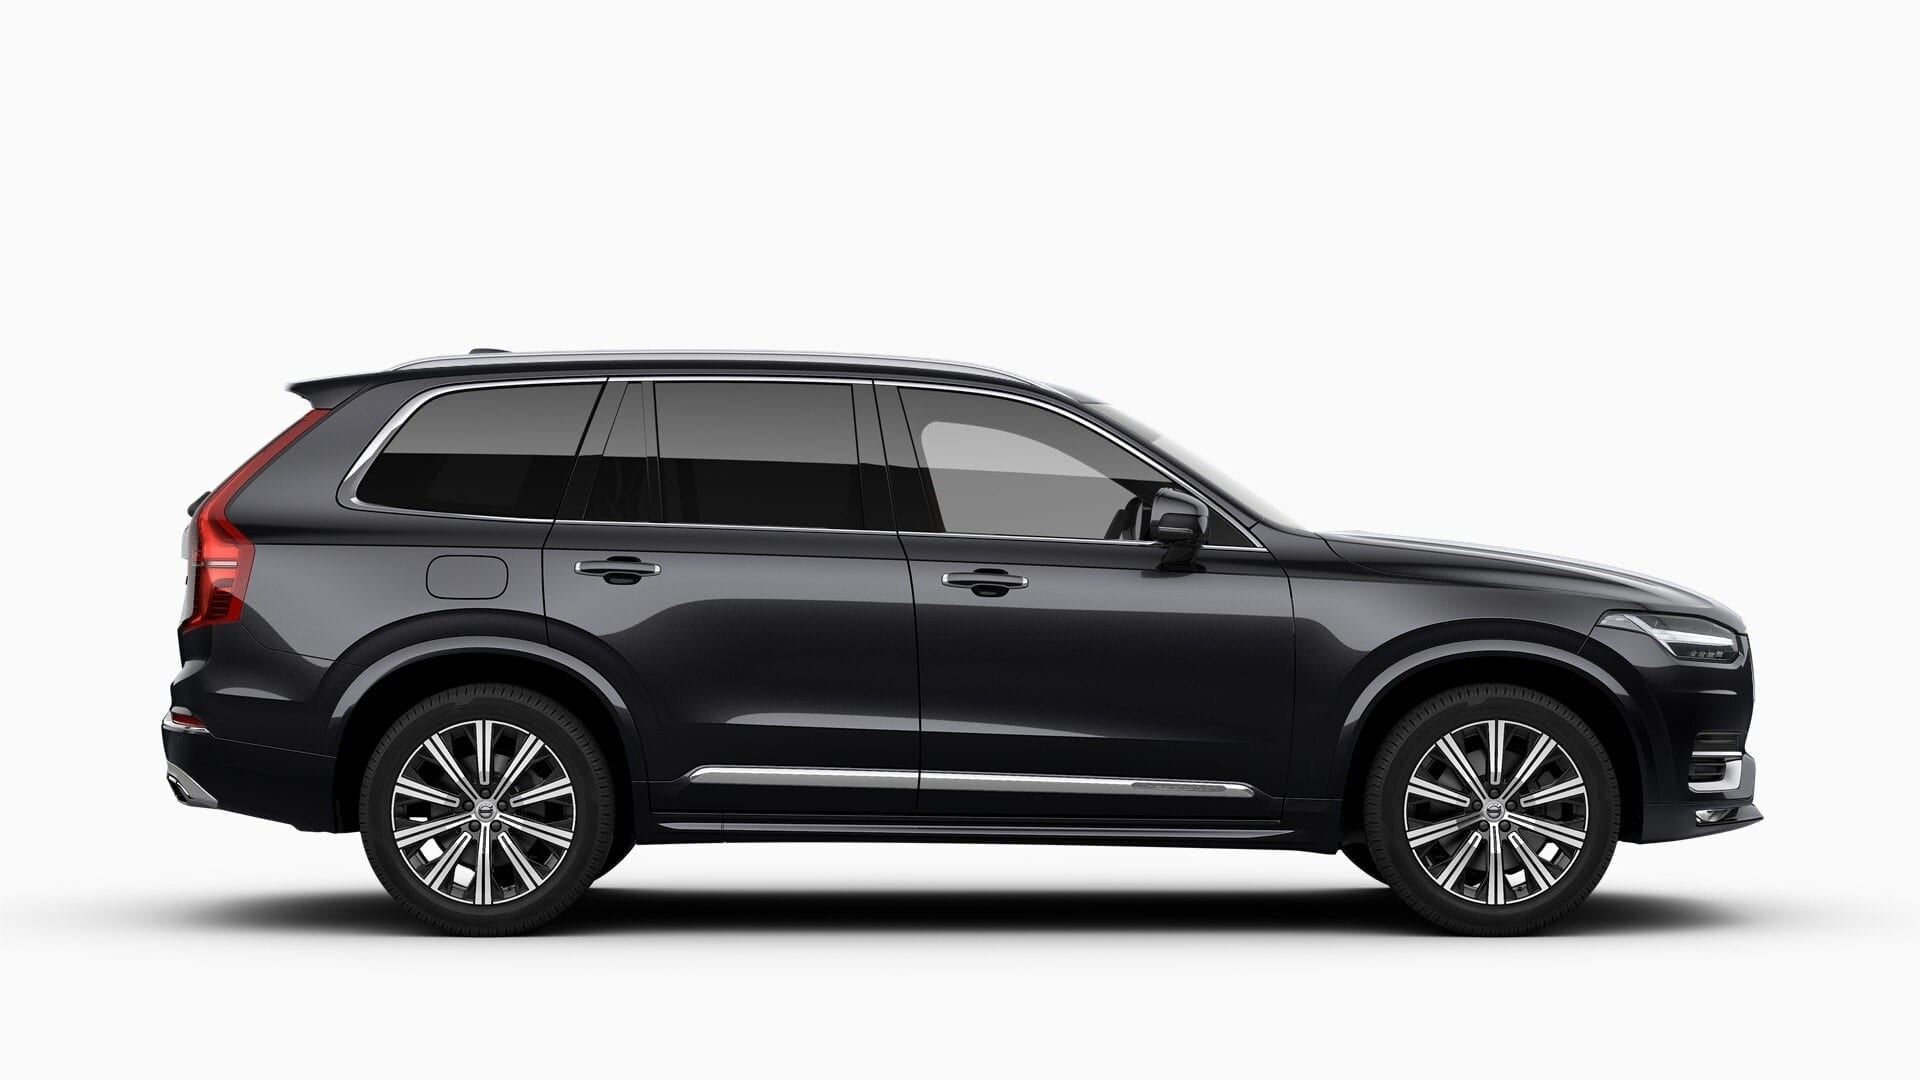 VOLVO XC90 Inscription TOP фото 3